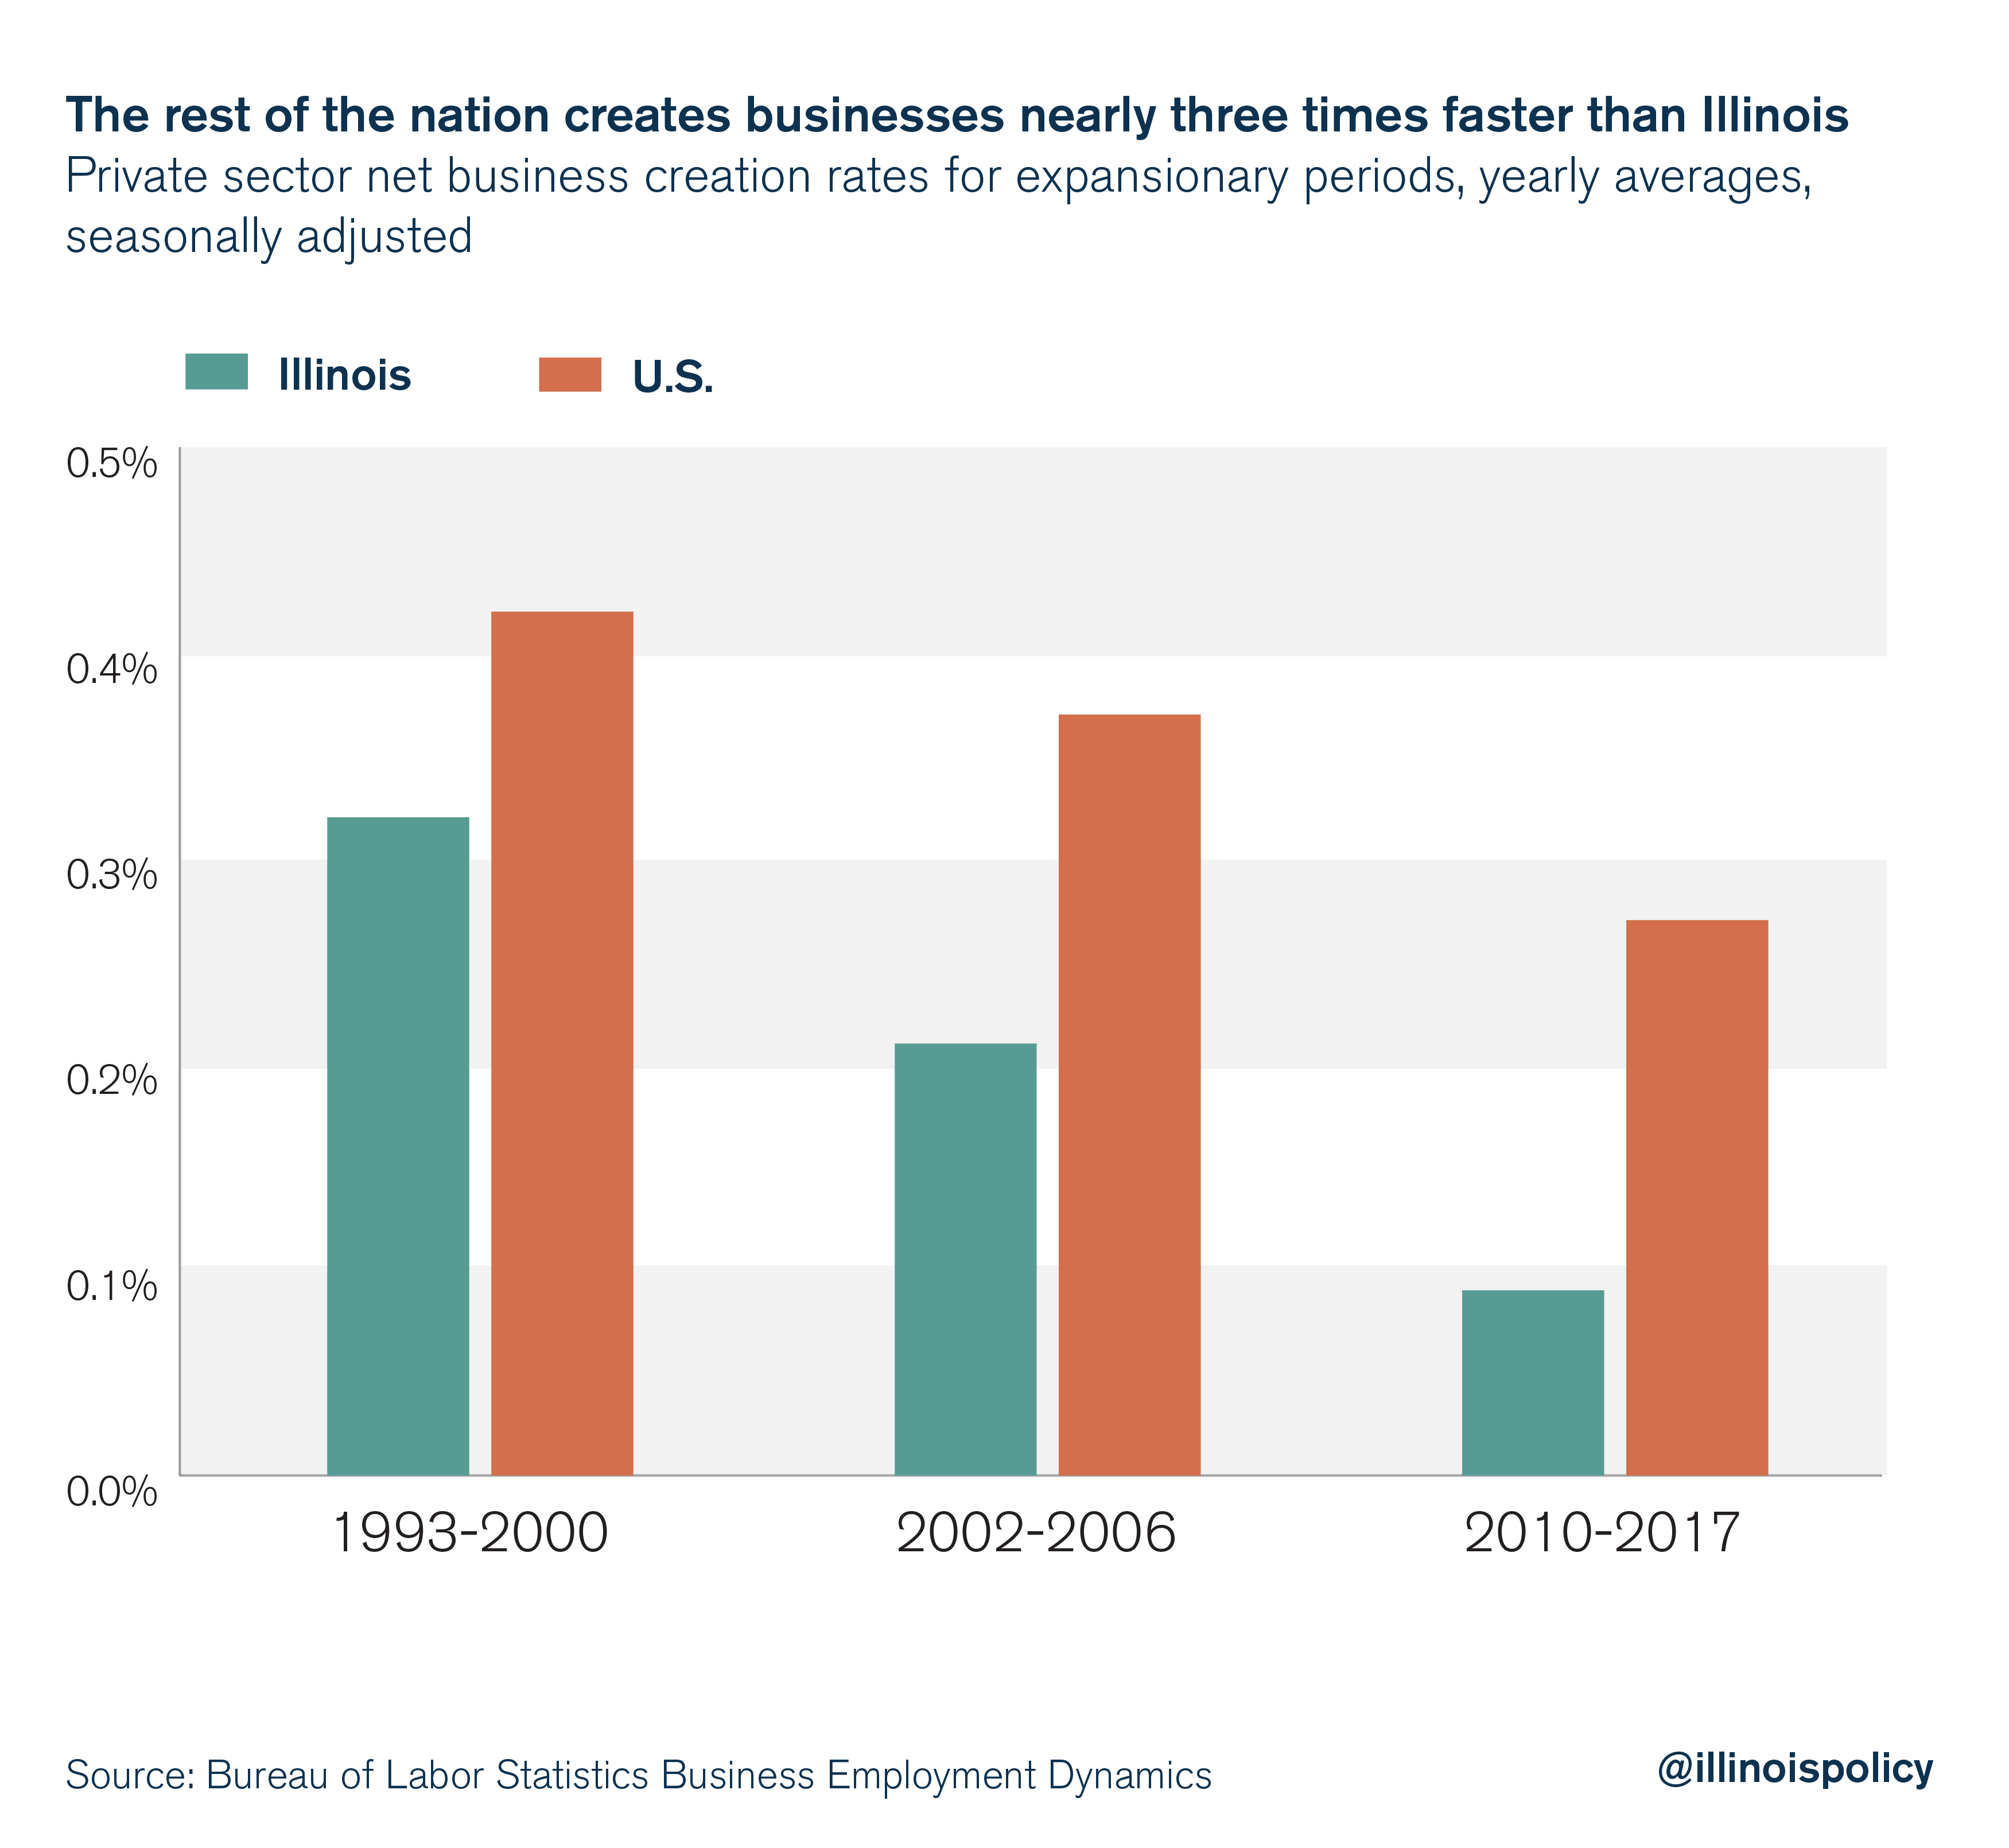 The rest of the nation creates businesses nearly three times faster than Illinois